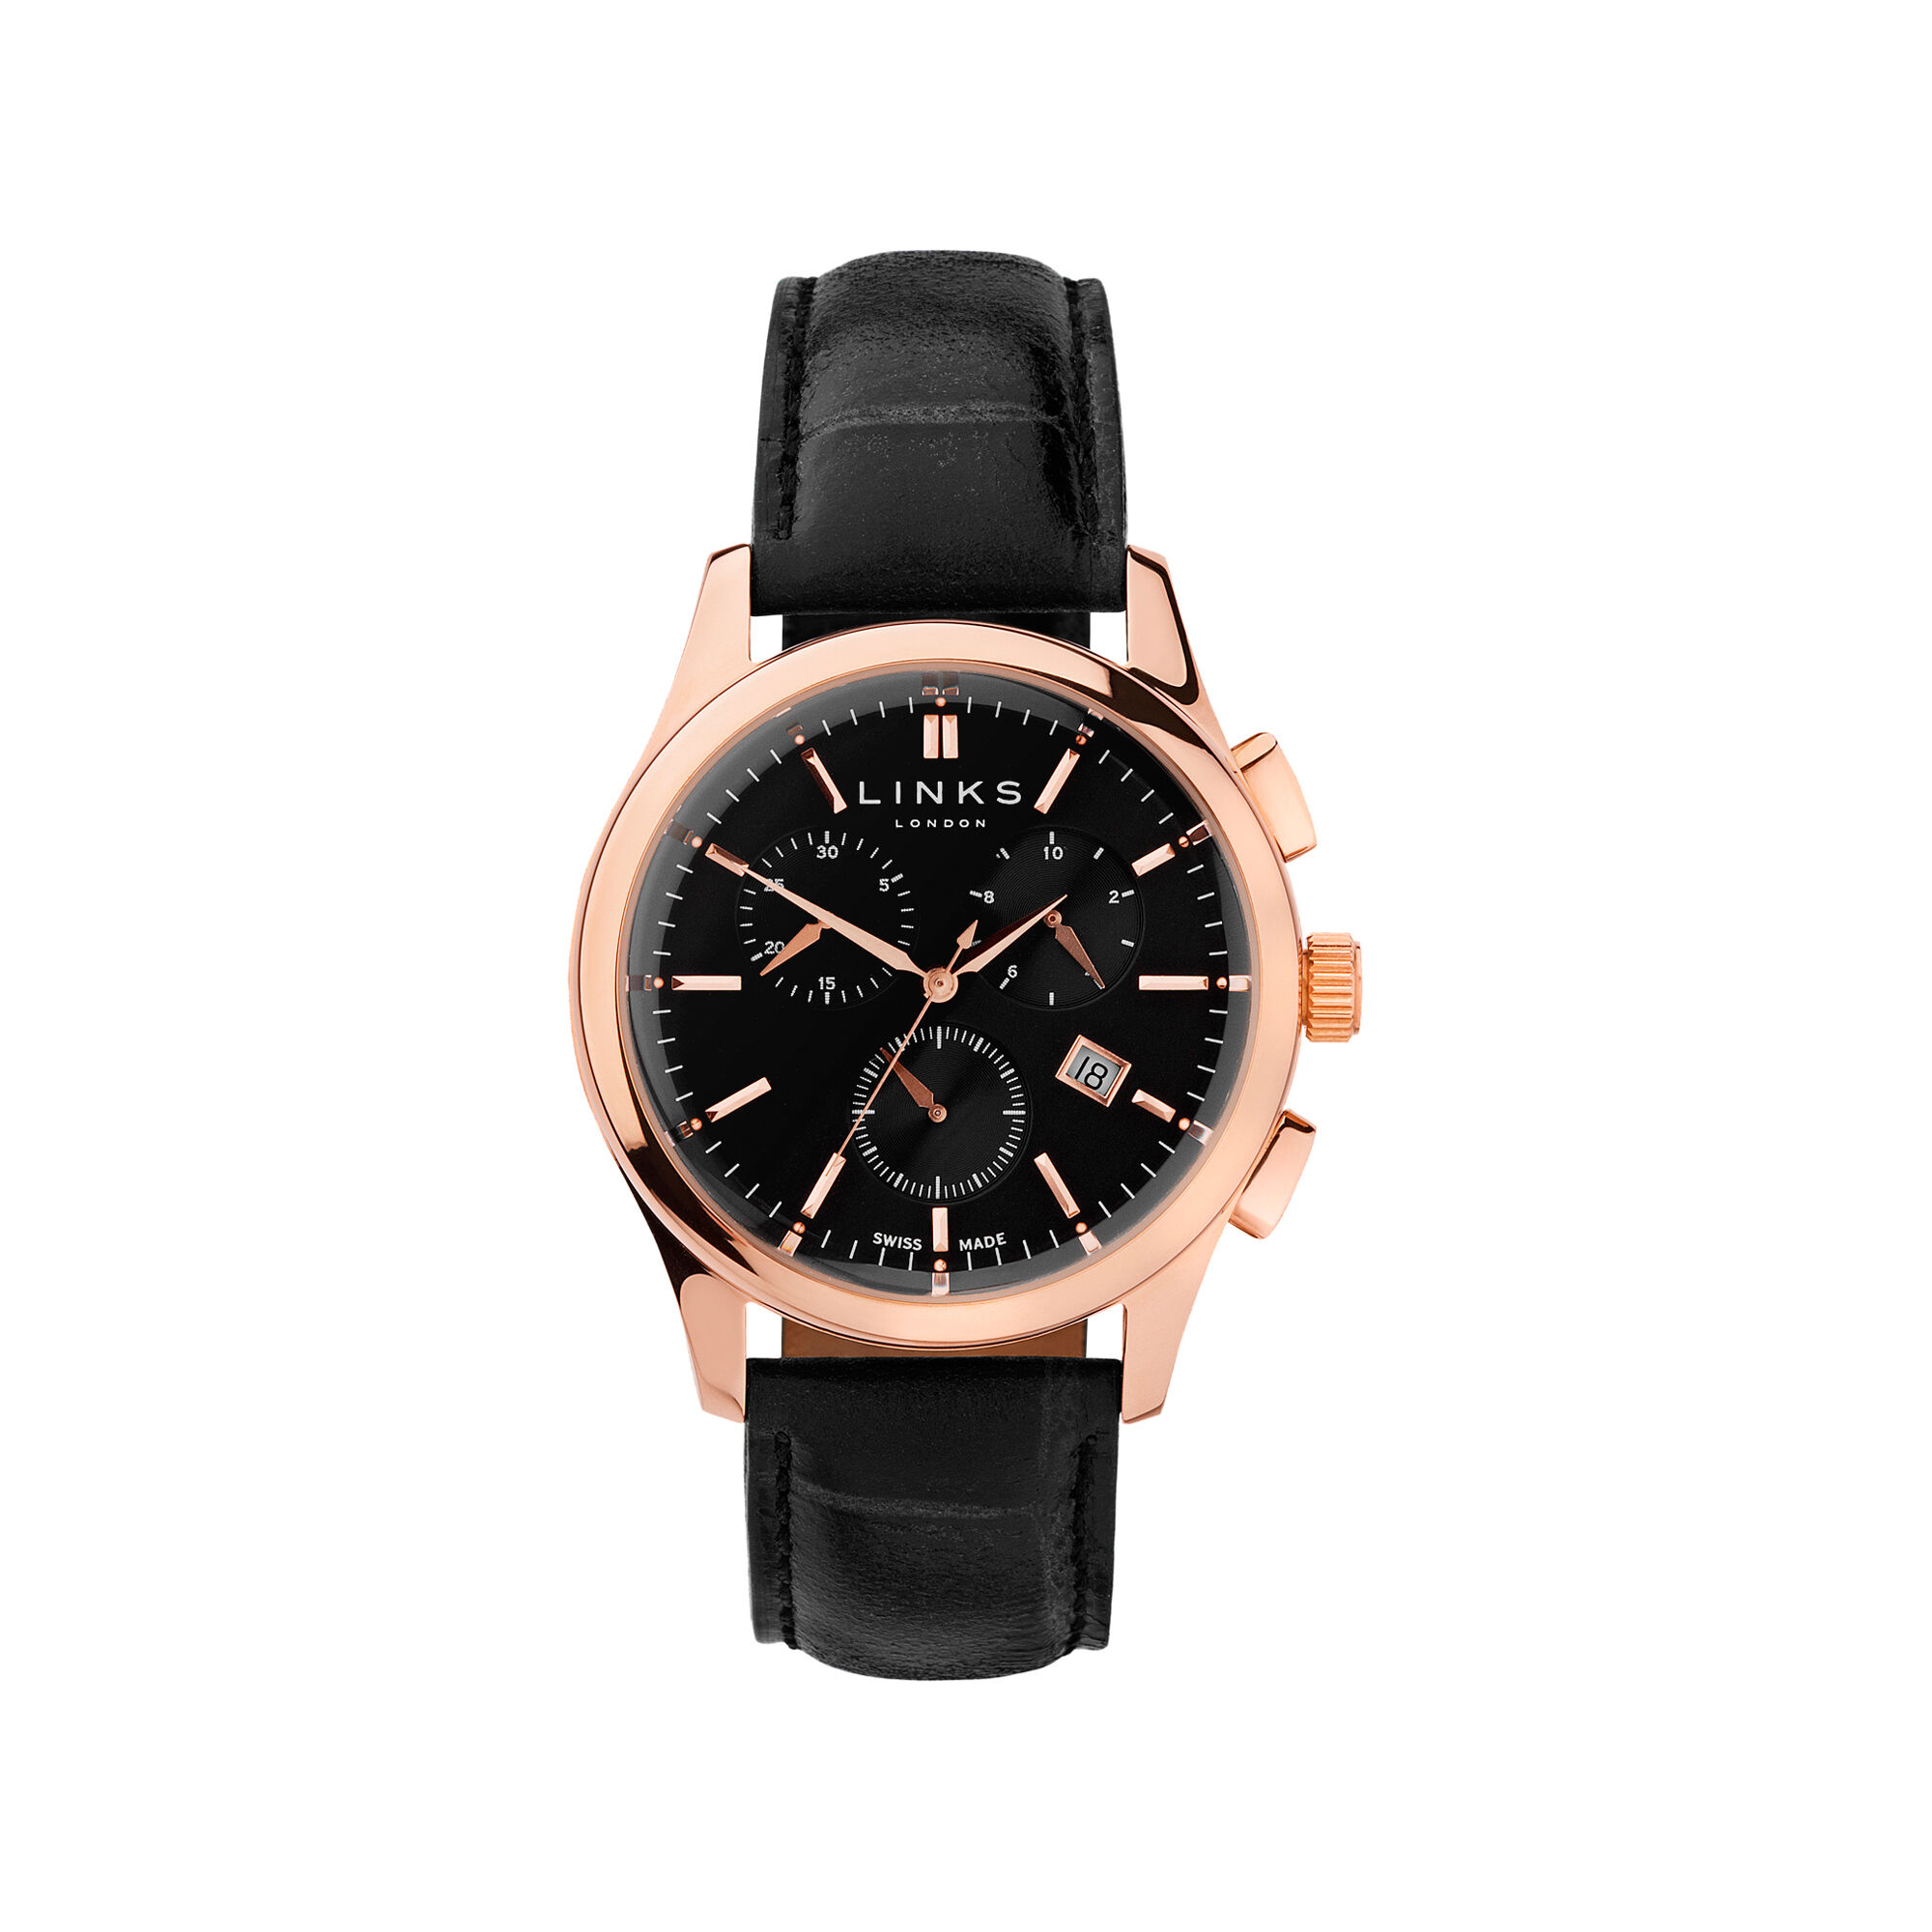 en watches birks watch nodiamonds muse black musewatch leather